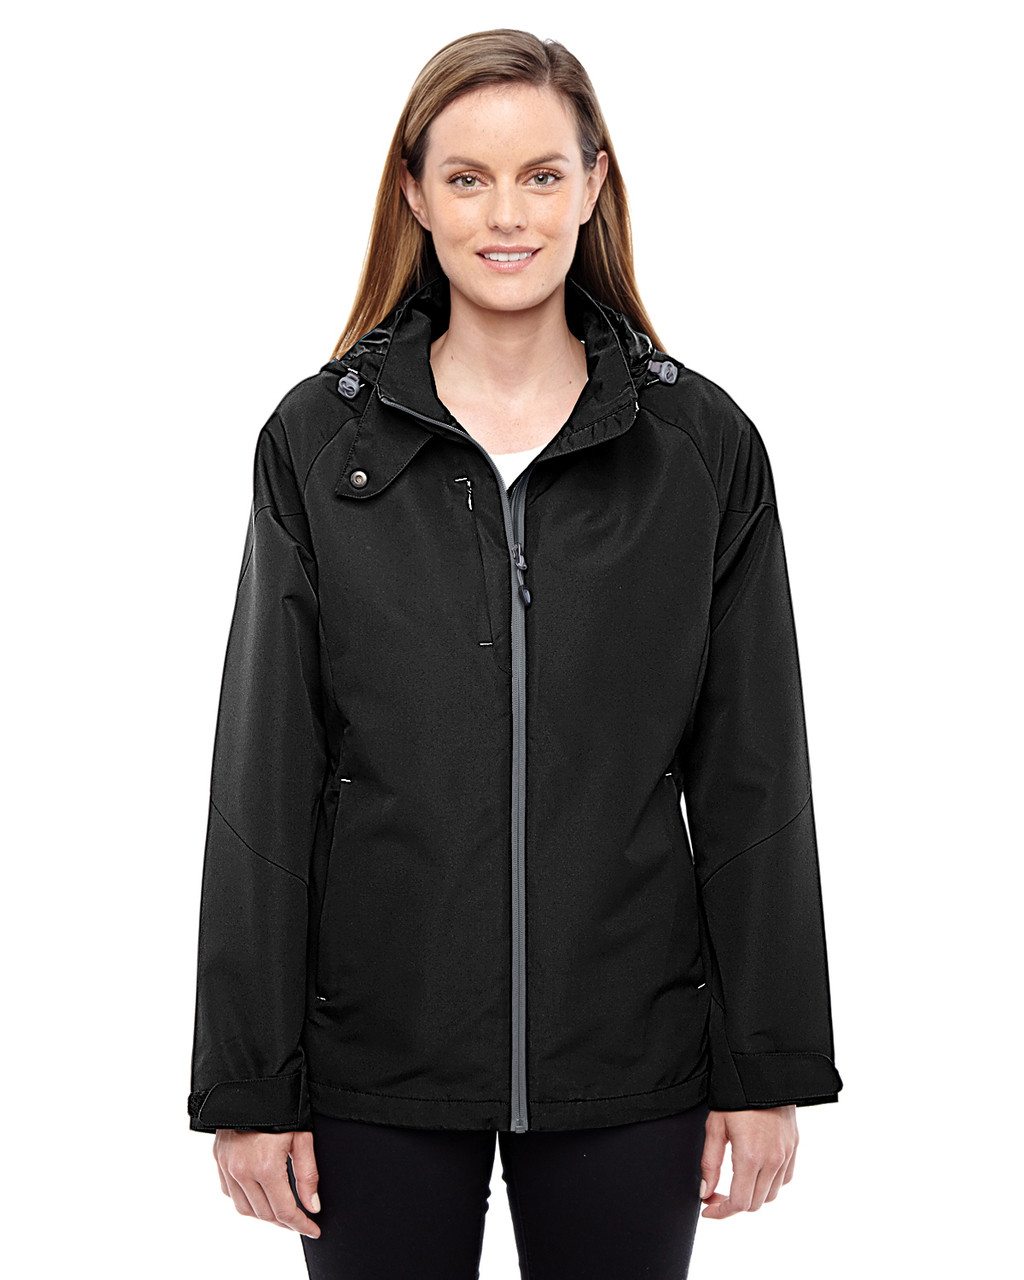 Black-Graphite 78226 North End Ladies' Insight Interactive Shell Jacket | Blankclothing.ca